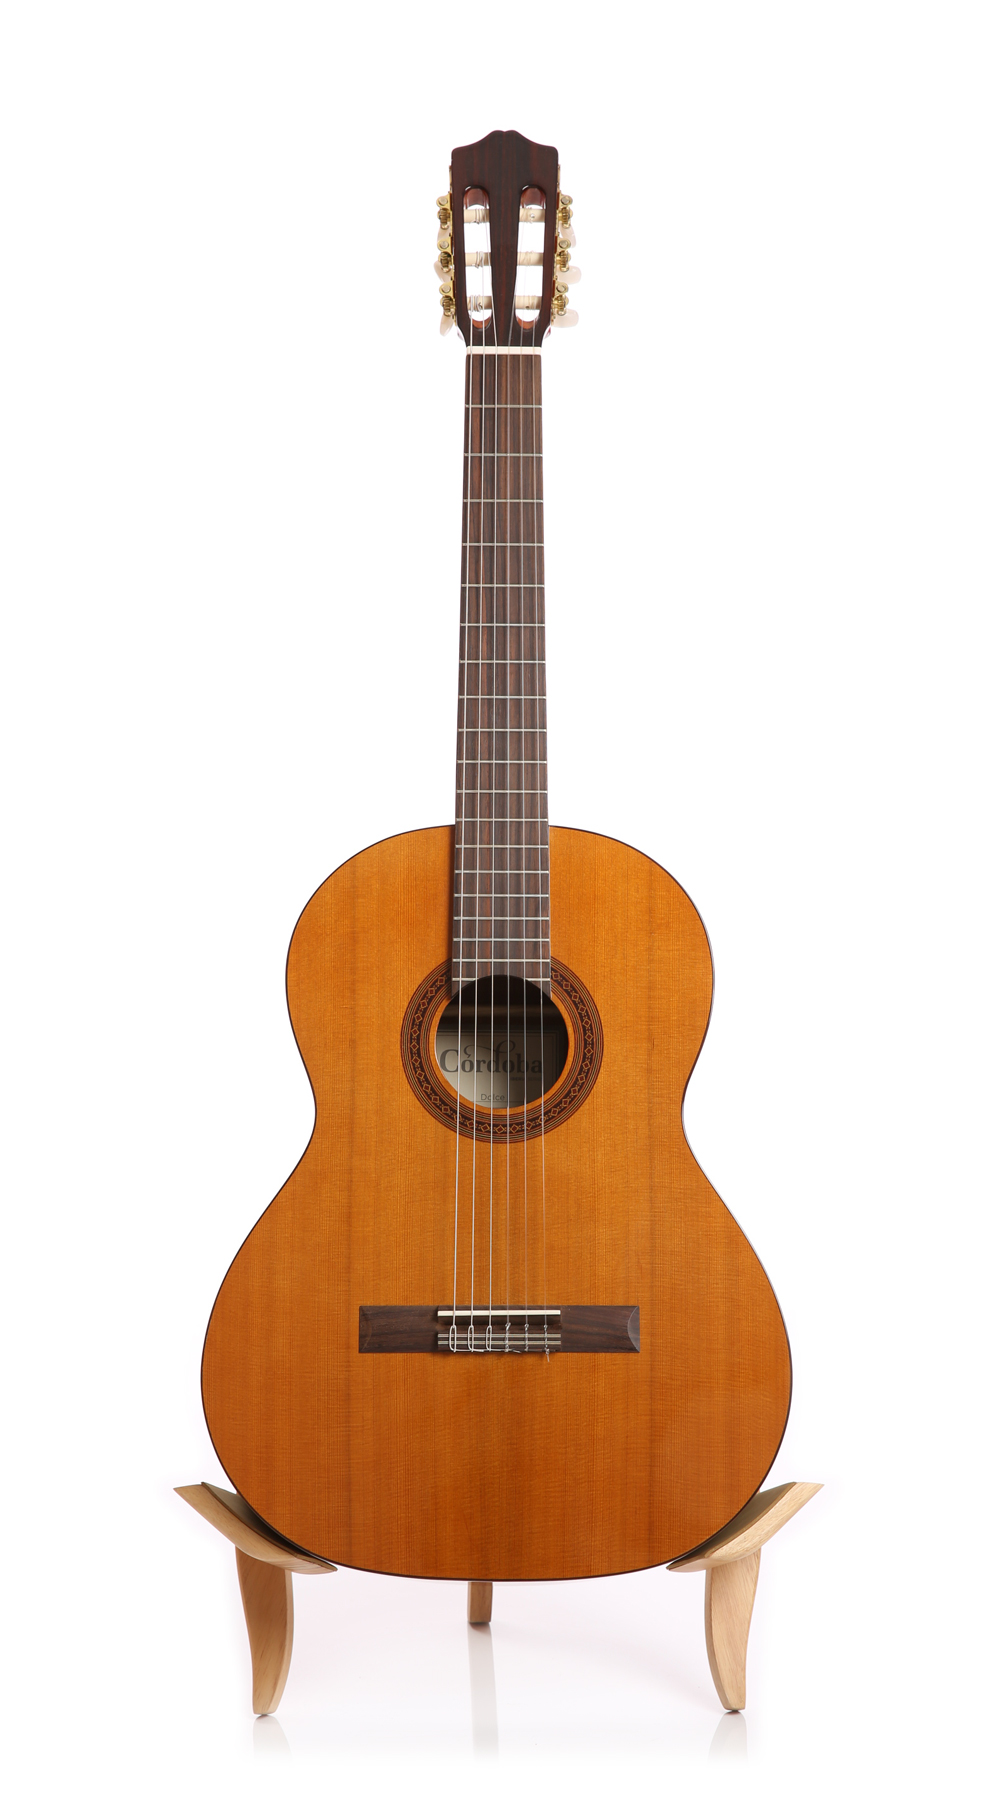 Cordoba Dolce nylon string guitar 7/8 for easier playability